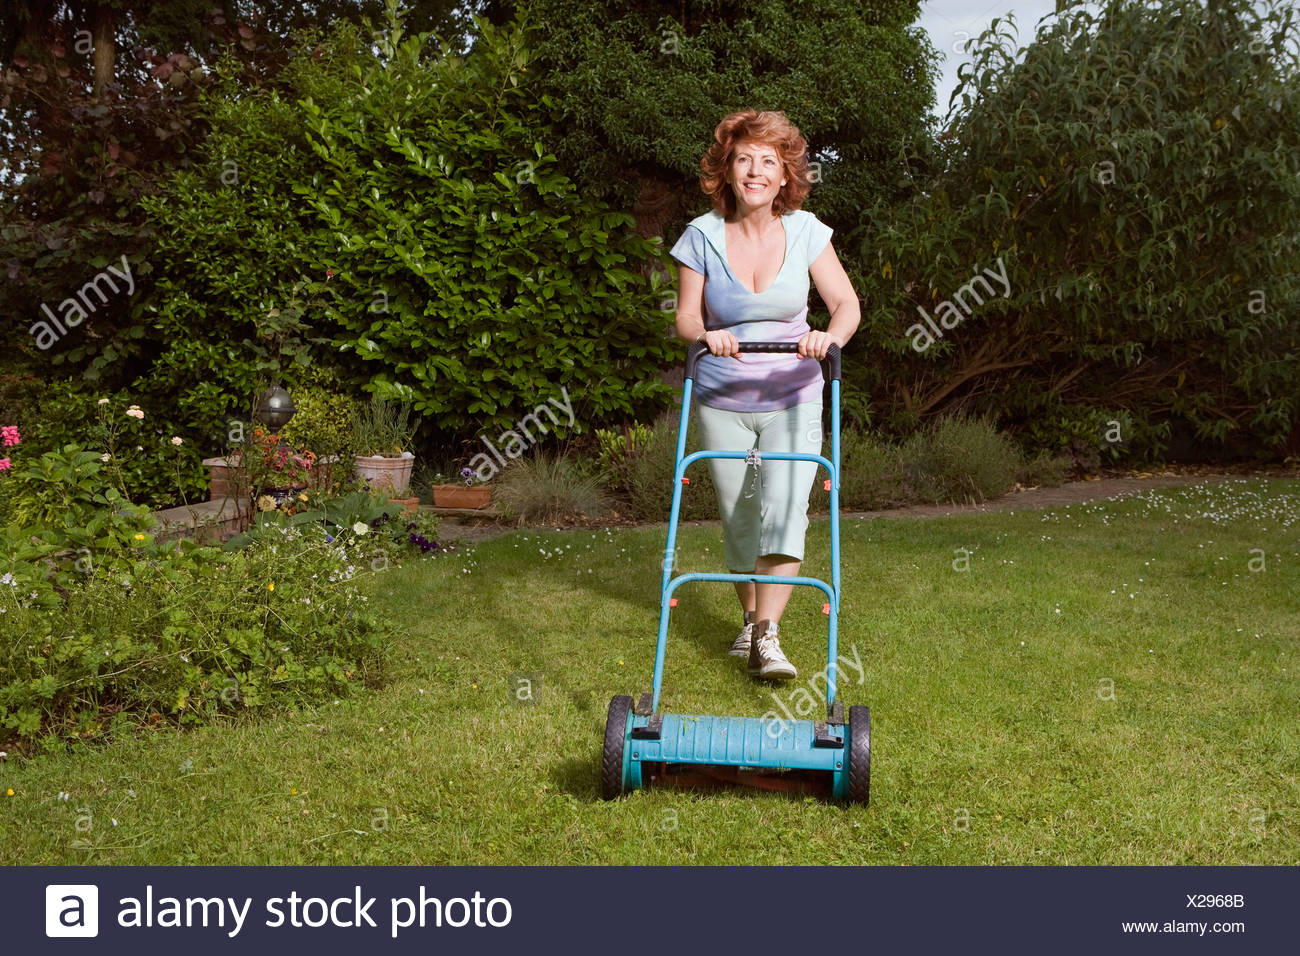 Mature Woman mowing lawn Photo Stock